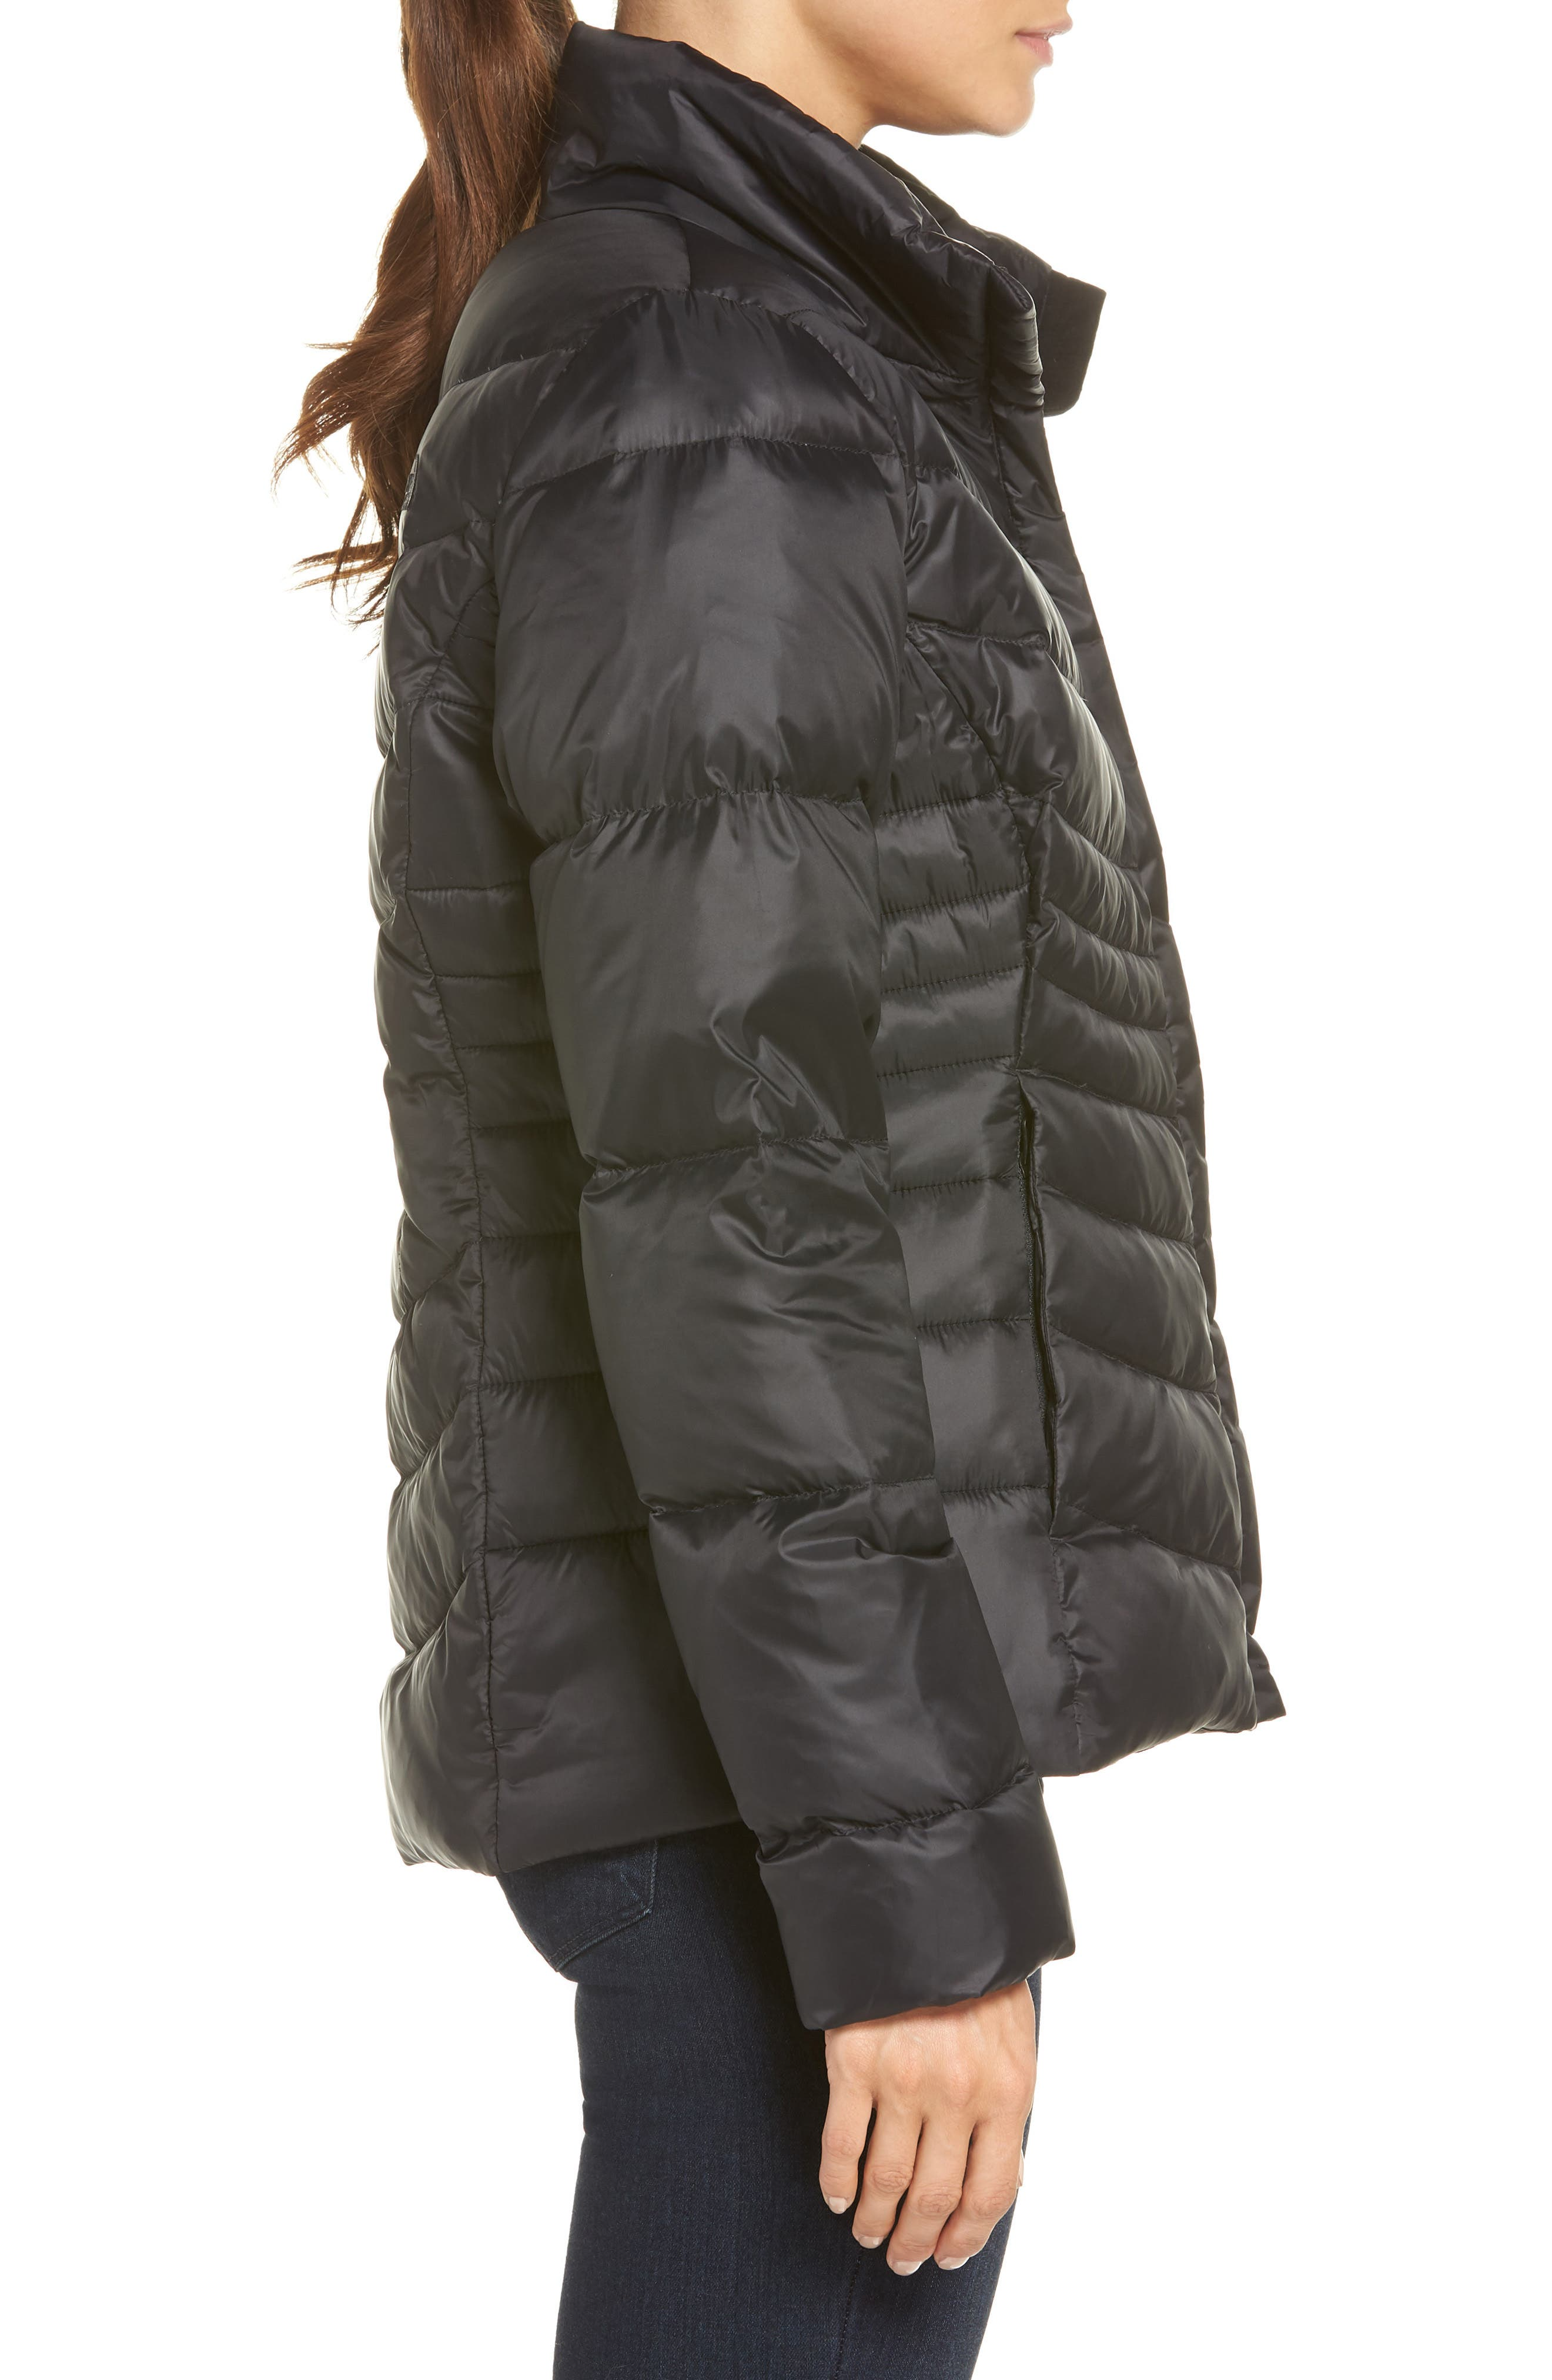 THE NORTH FACE,                             Aconcagua II Down Jacket,                             Alternate thumbnail 3, color,                             001